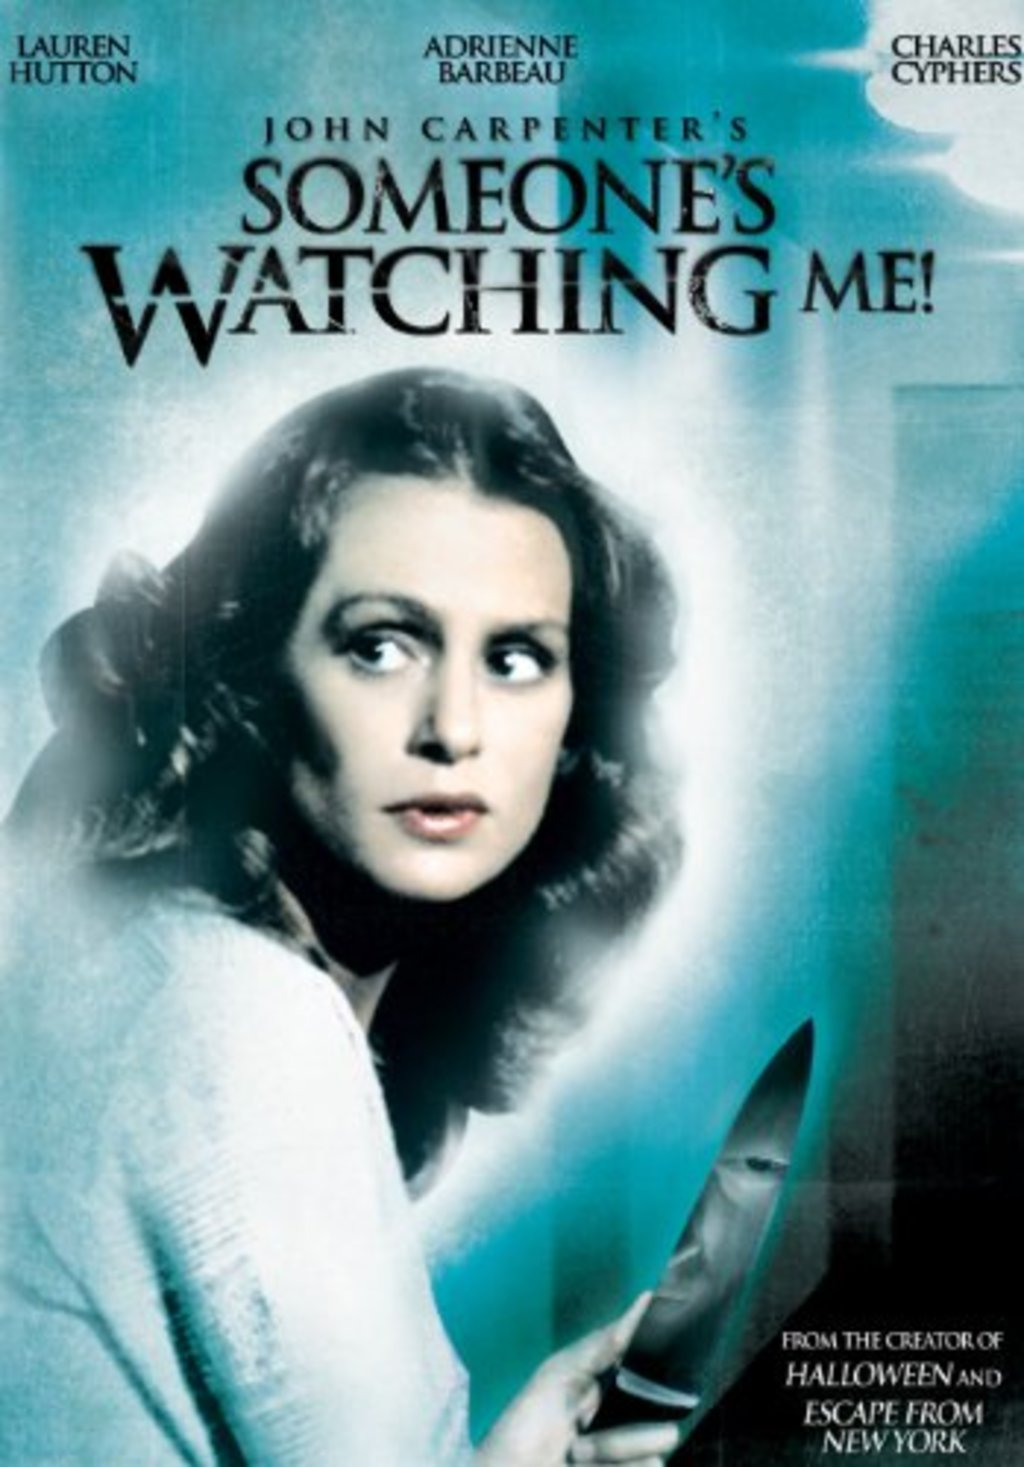 Watch Someone's Watching Me! on Netflix Today ...